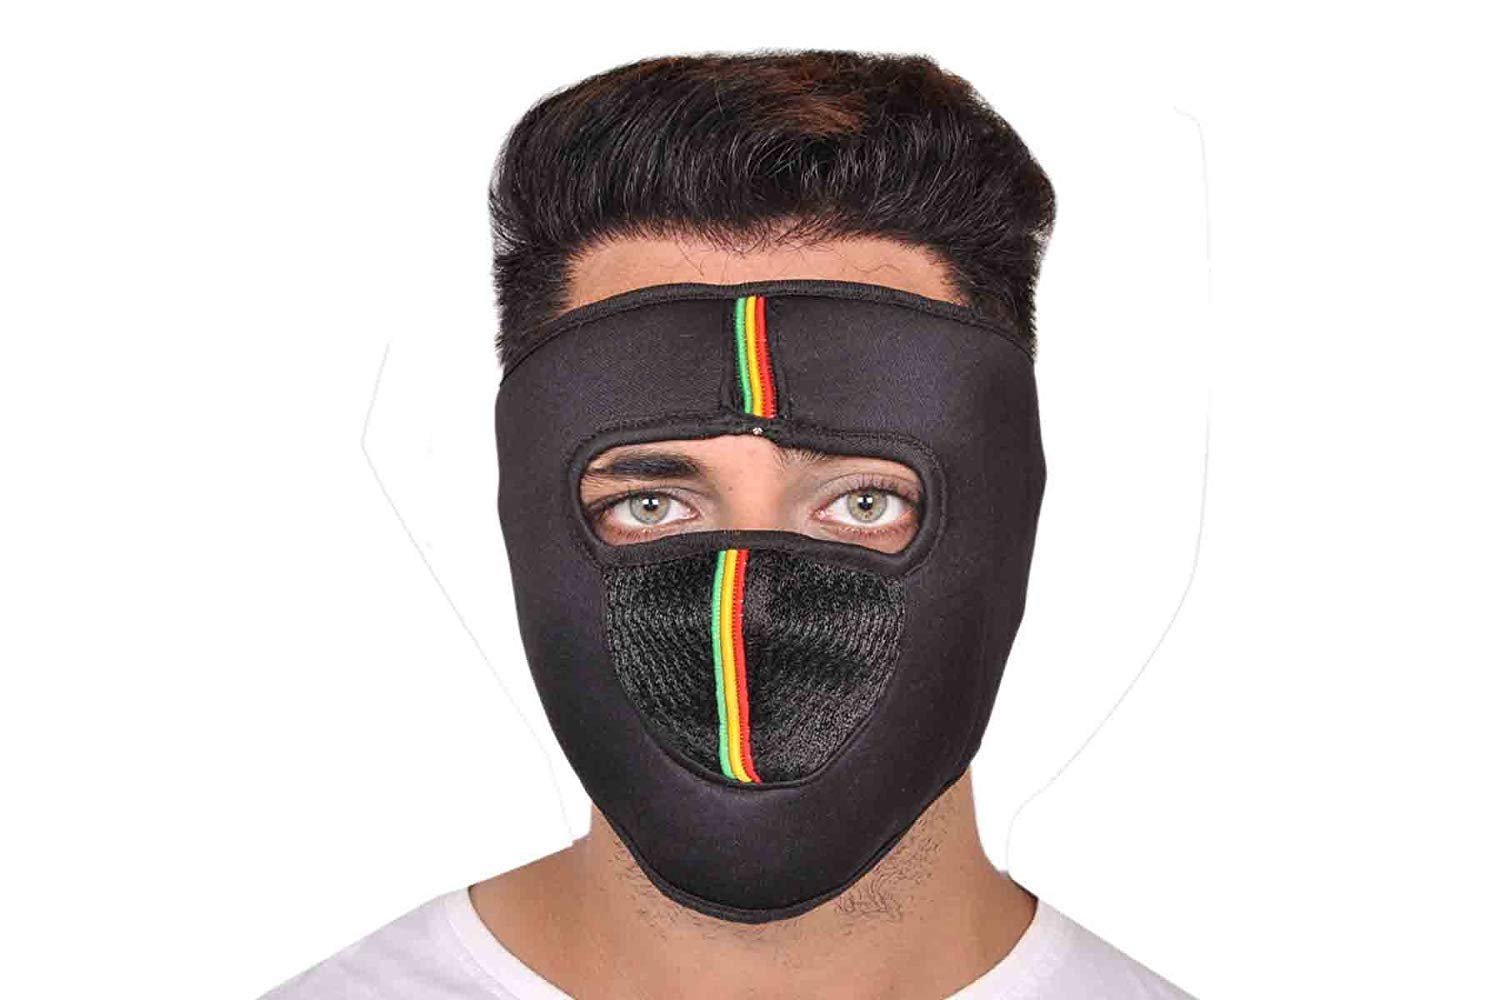 Rediant AIR00CT47 Bike Riders Mask (Multicolour)